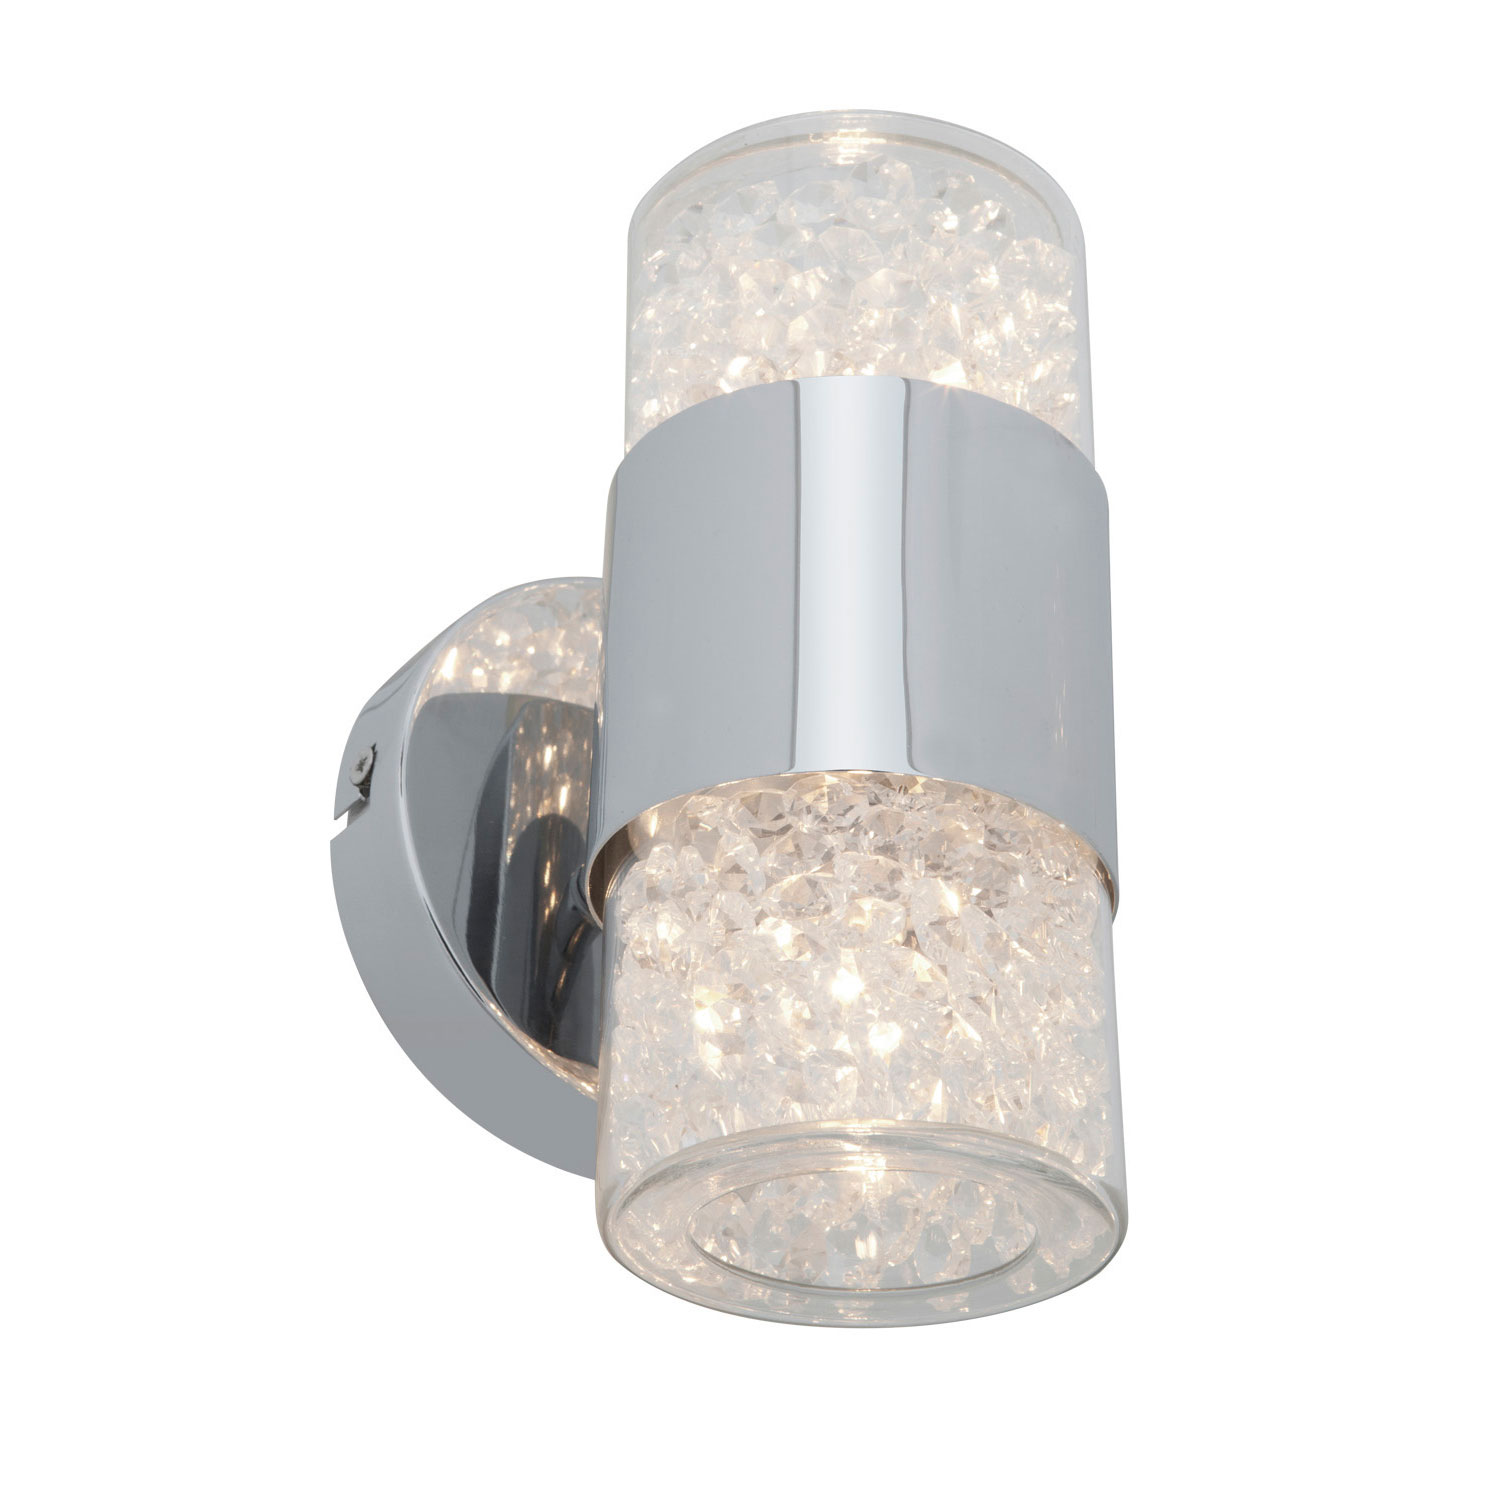 Kristal Crystal Vertical Bathroom Vanity Light by Access 51015-CH/CCL